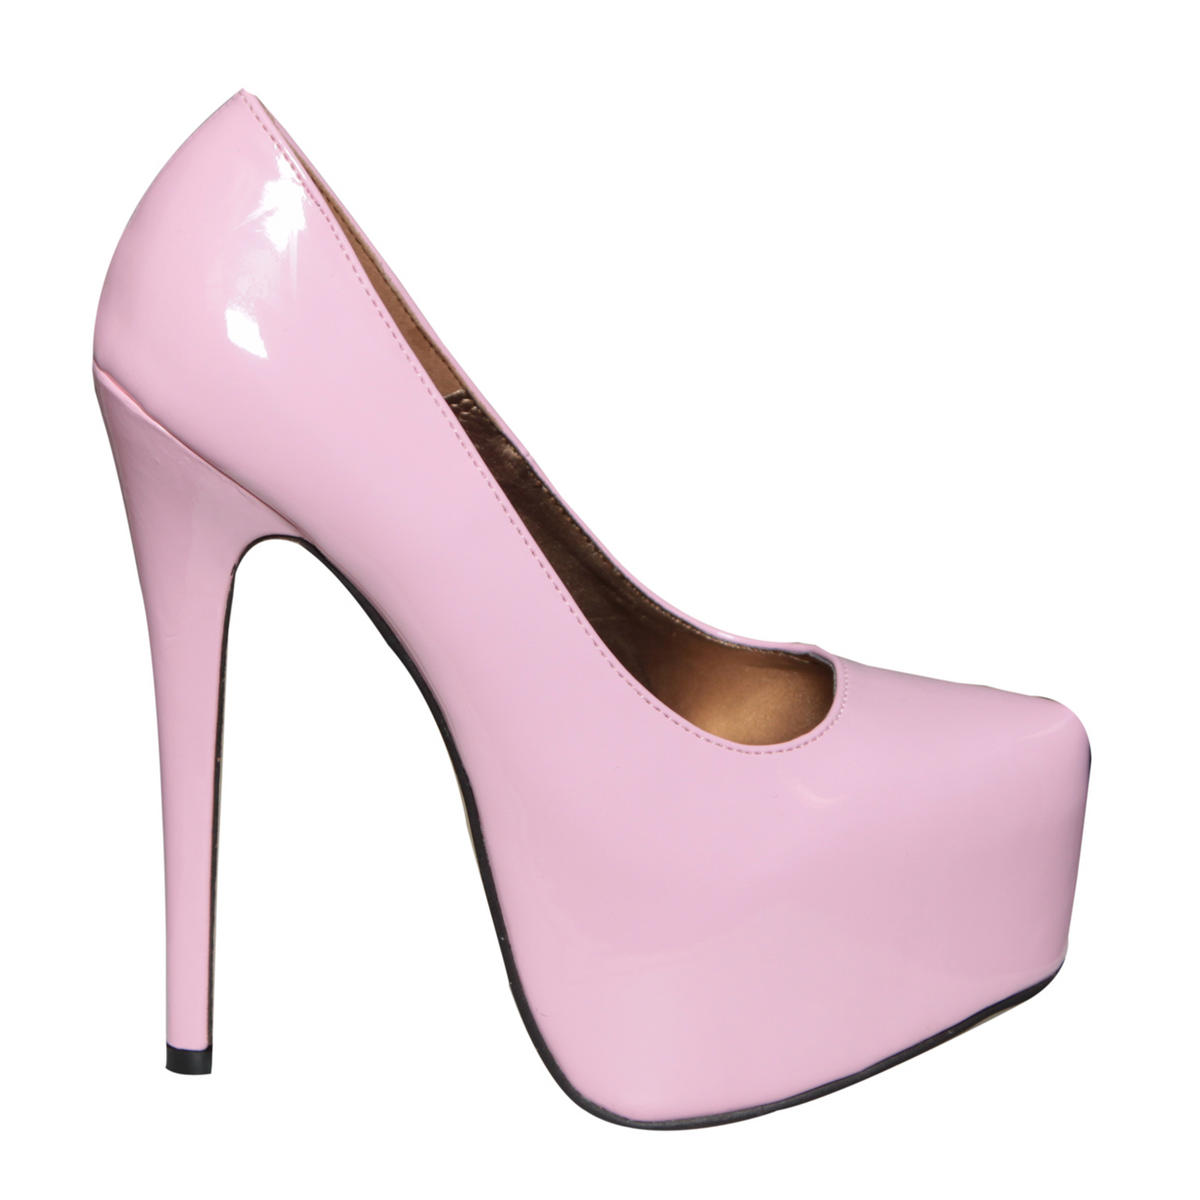 SIZE 3 ONLY Pink Patent Platform Shoe Preview